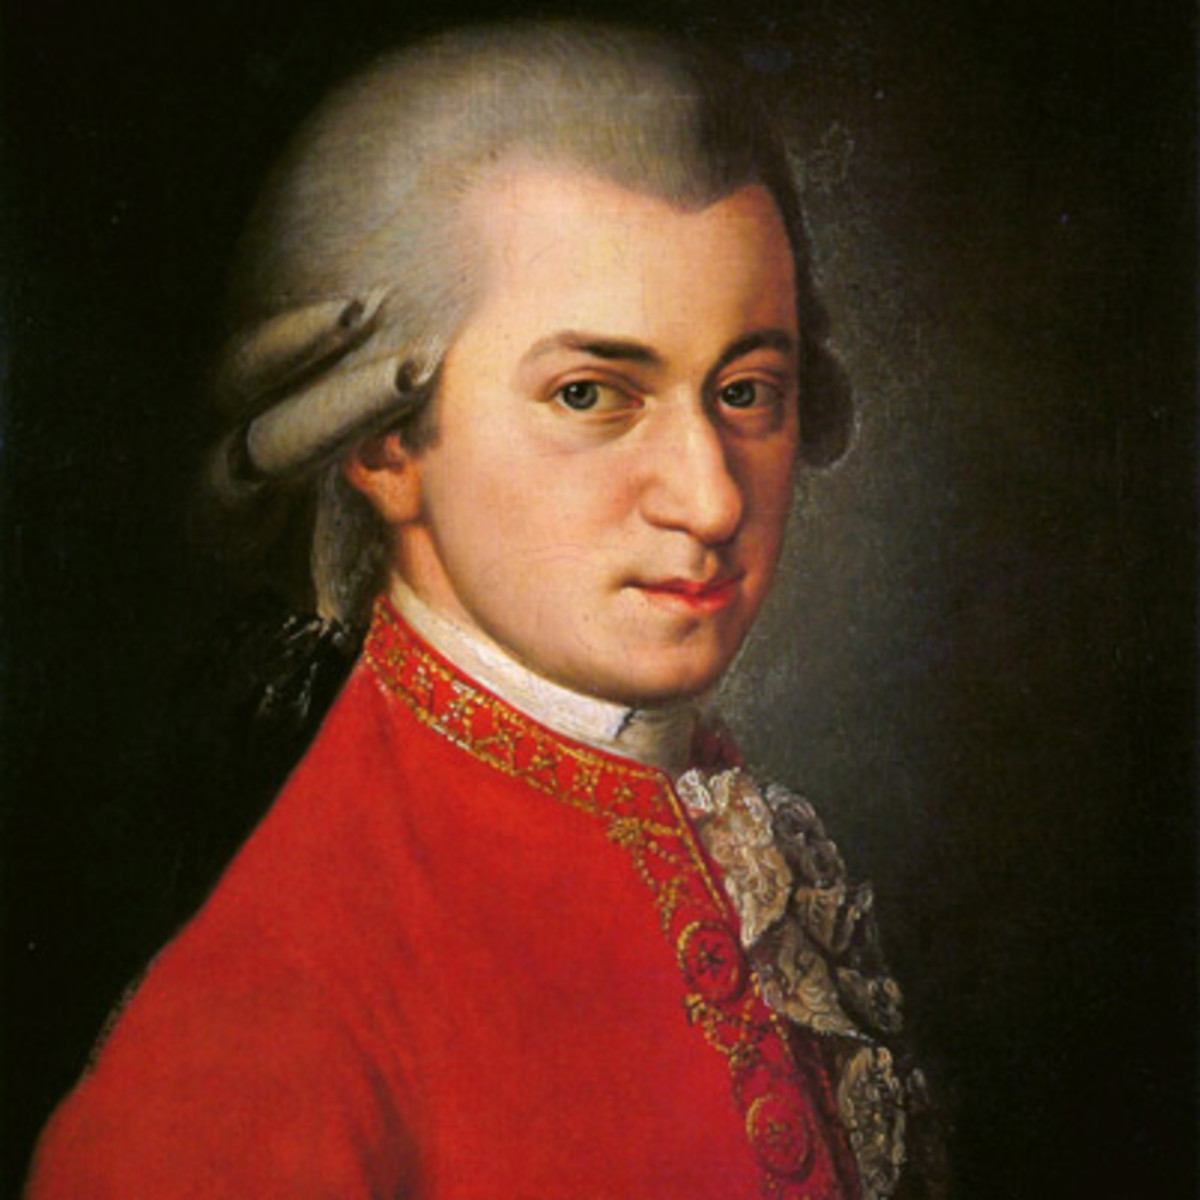 This is Mozart